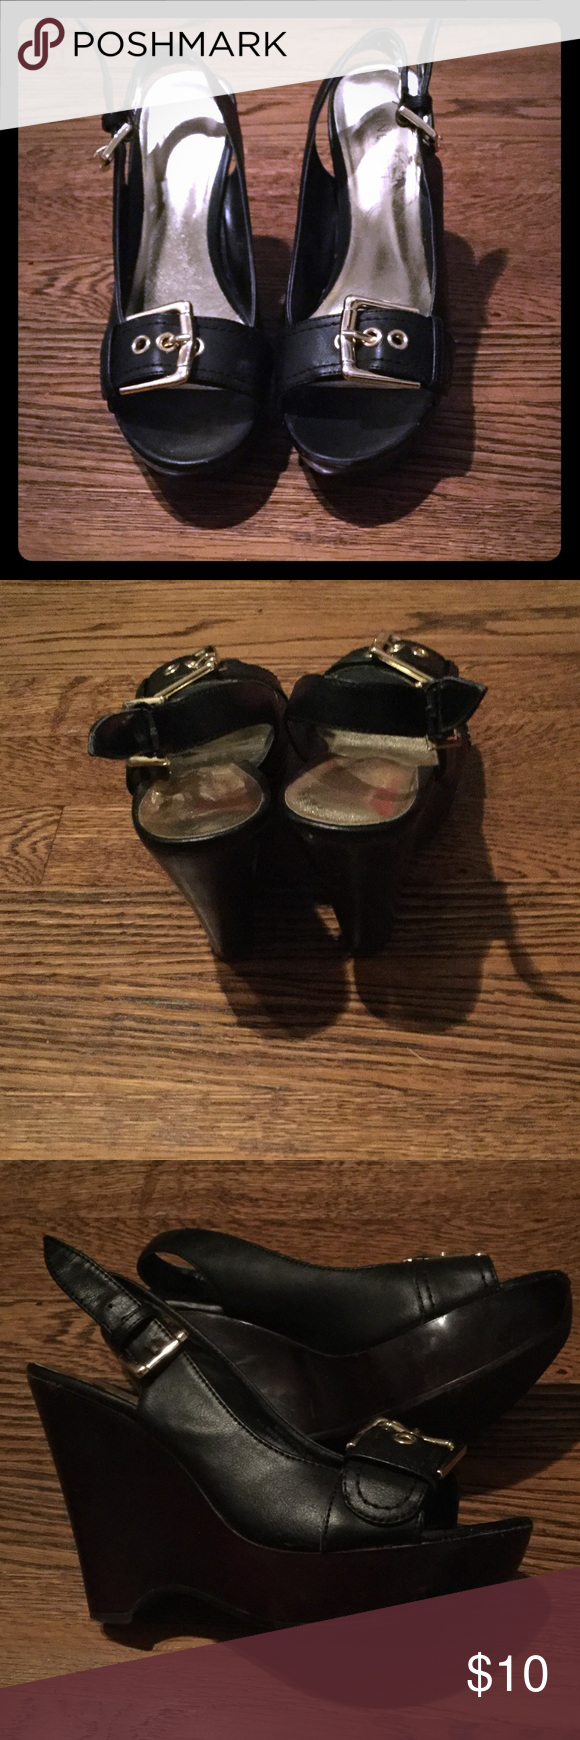 Nine West Wedges Black Wedges. Nine West. Has gold buckles. Some scuff in the front of the shoe. Make an offer. Nine West Shoes Wedges